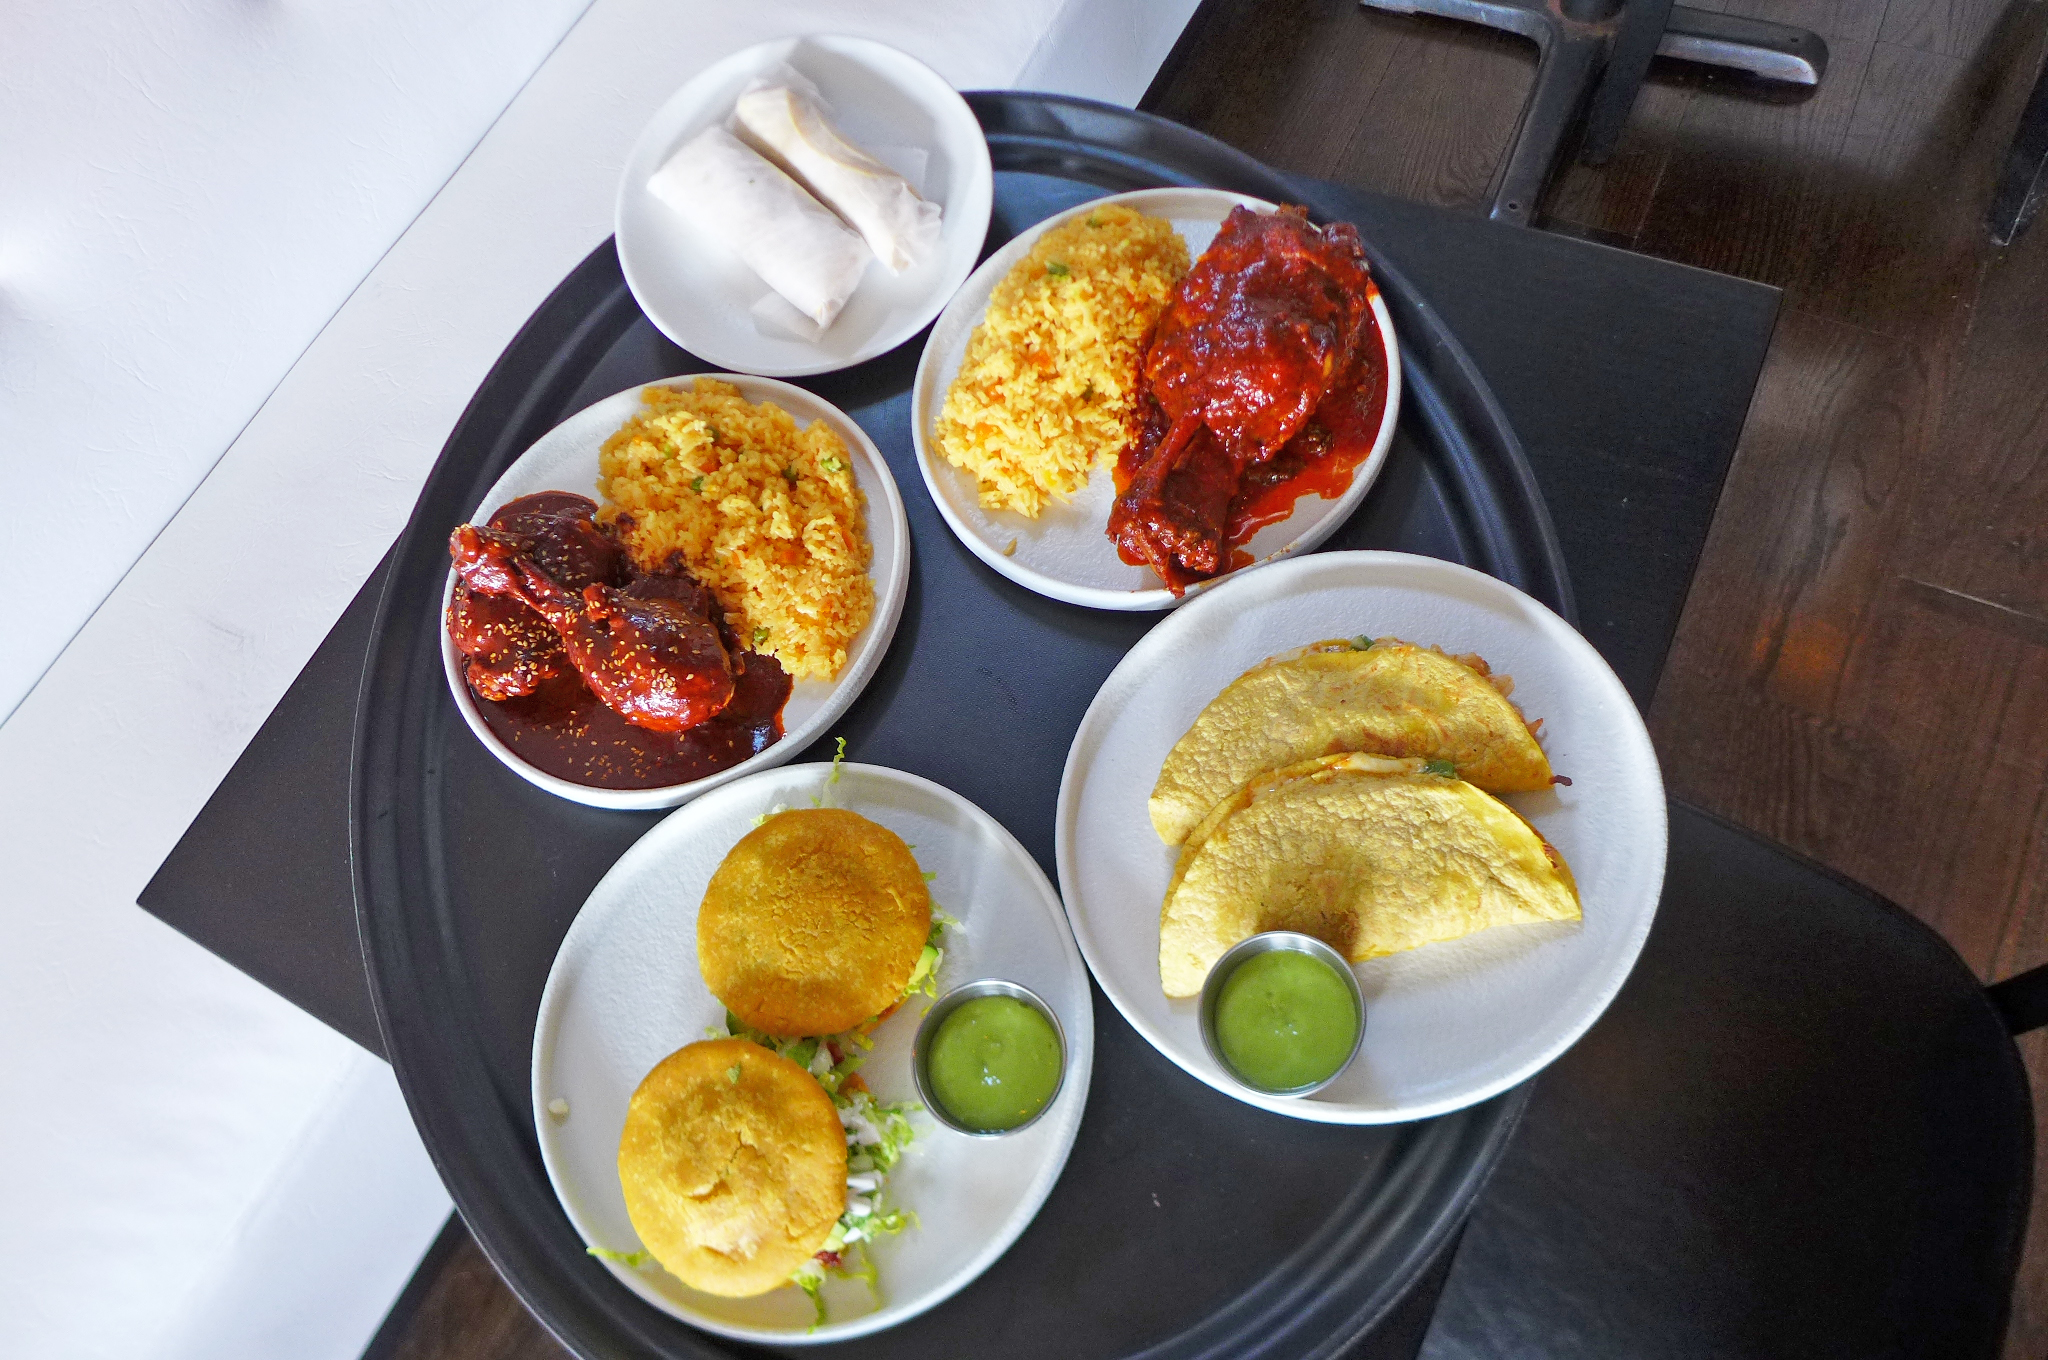 Four plates of food on a black and white background, mainly in shades of red and yellow.